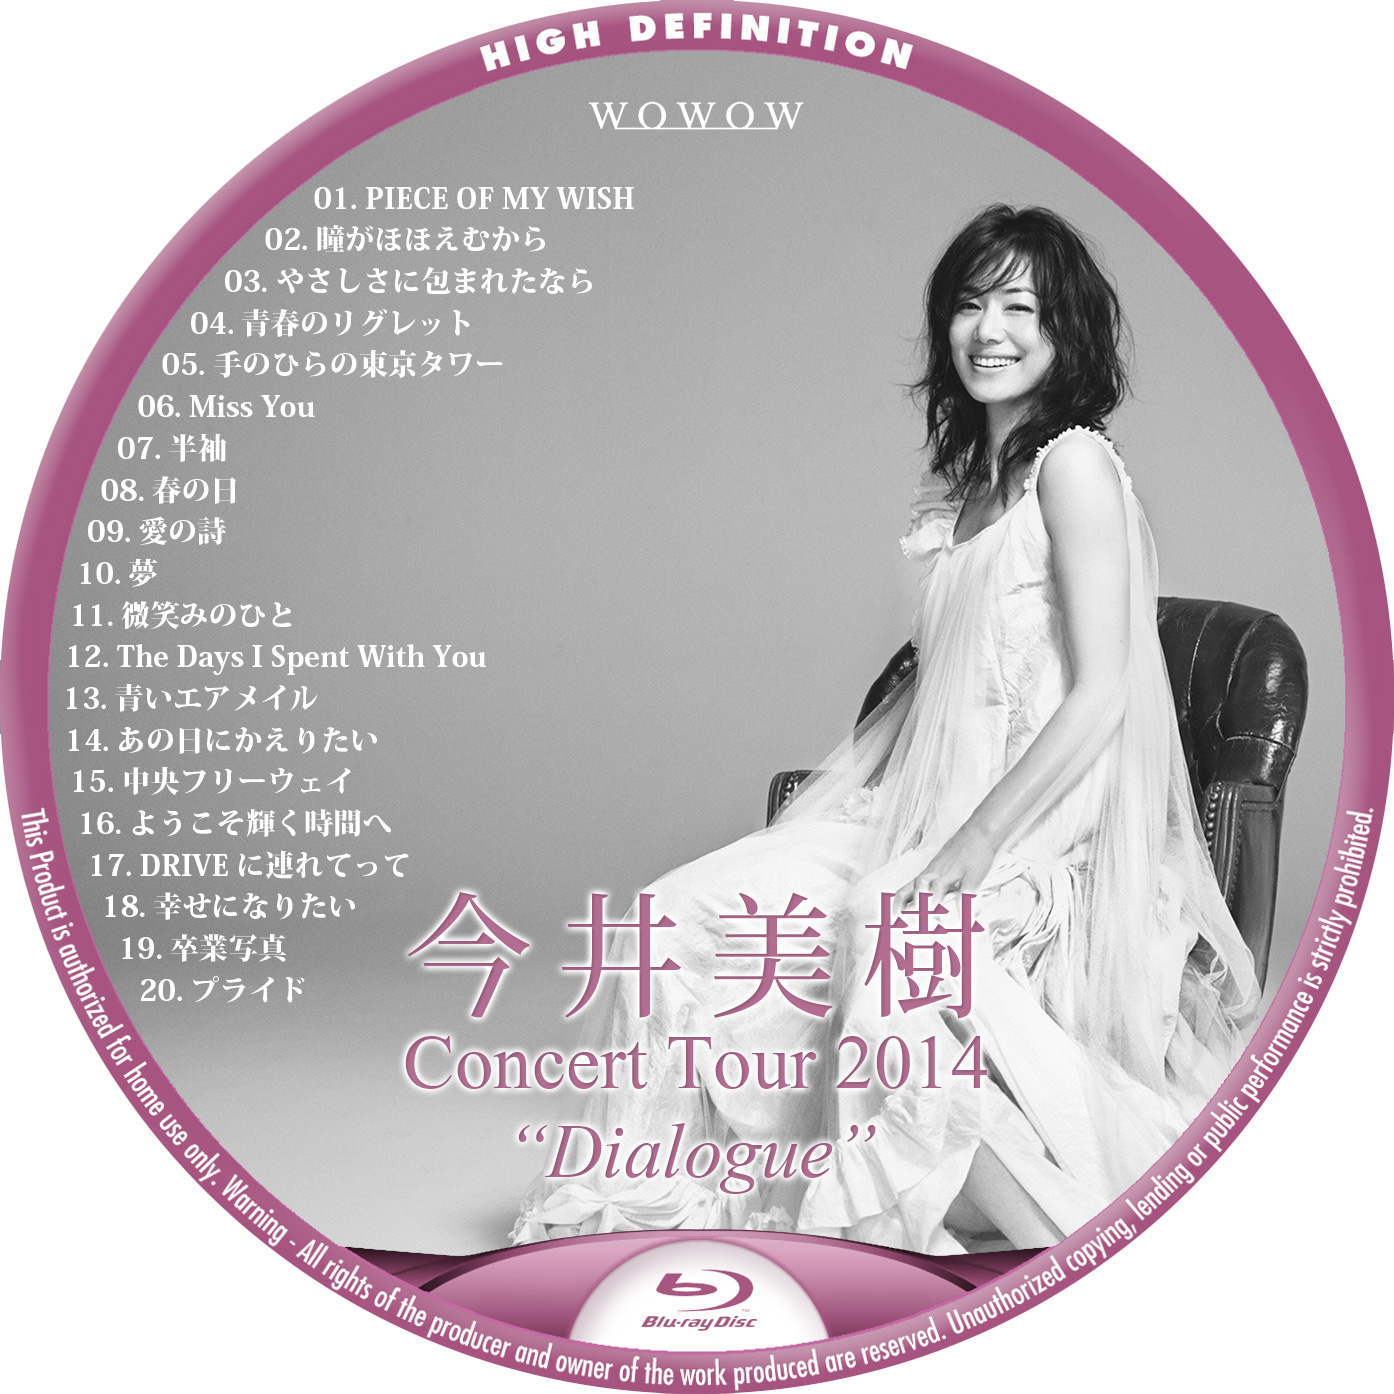 今井美樹 CONCERT TOUR 2014 Dialogue BDラベル Blu-ray